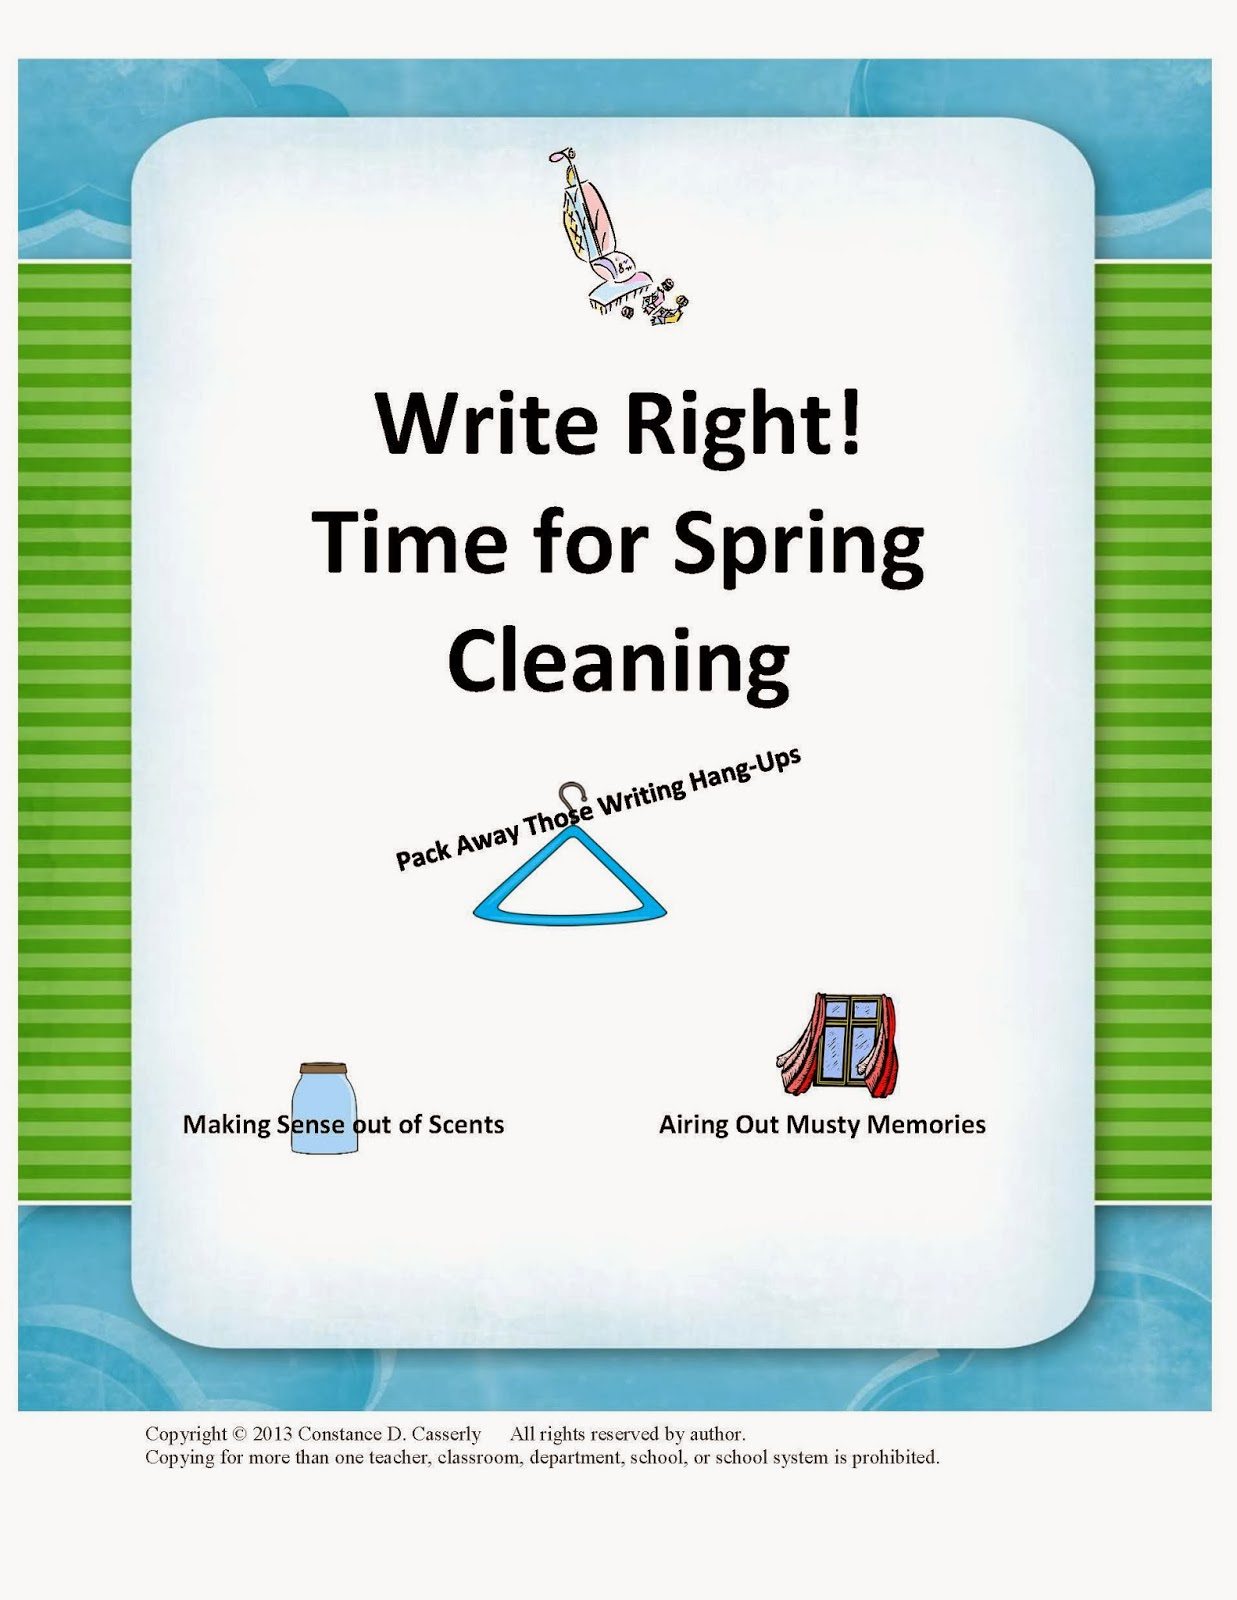 Write Right! Time for Spring Cleaning cover